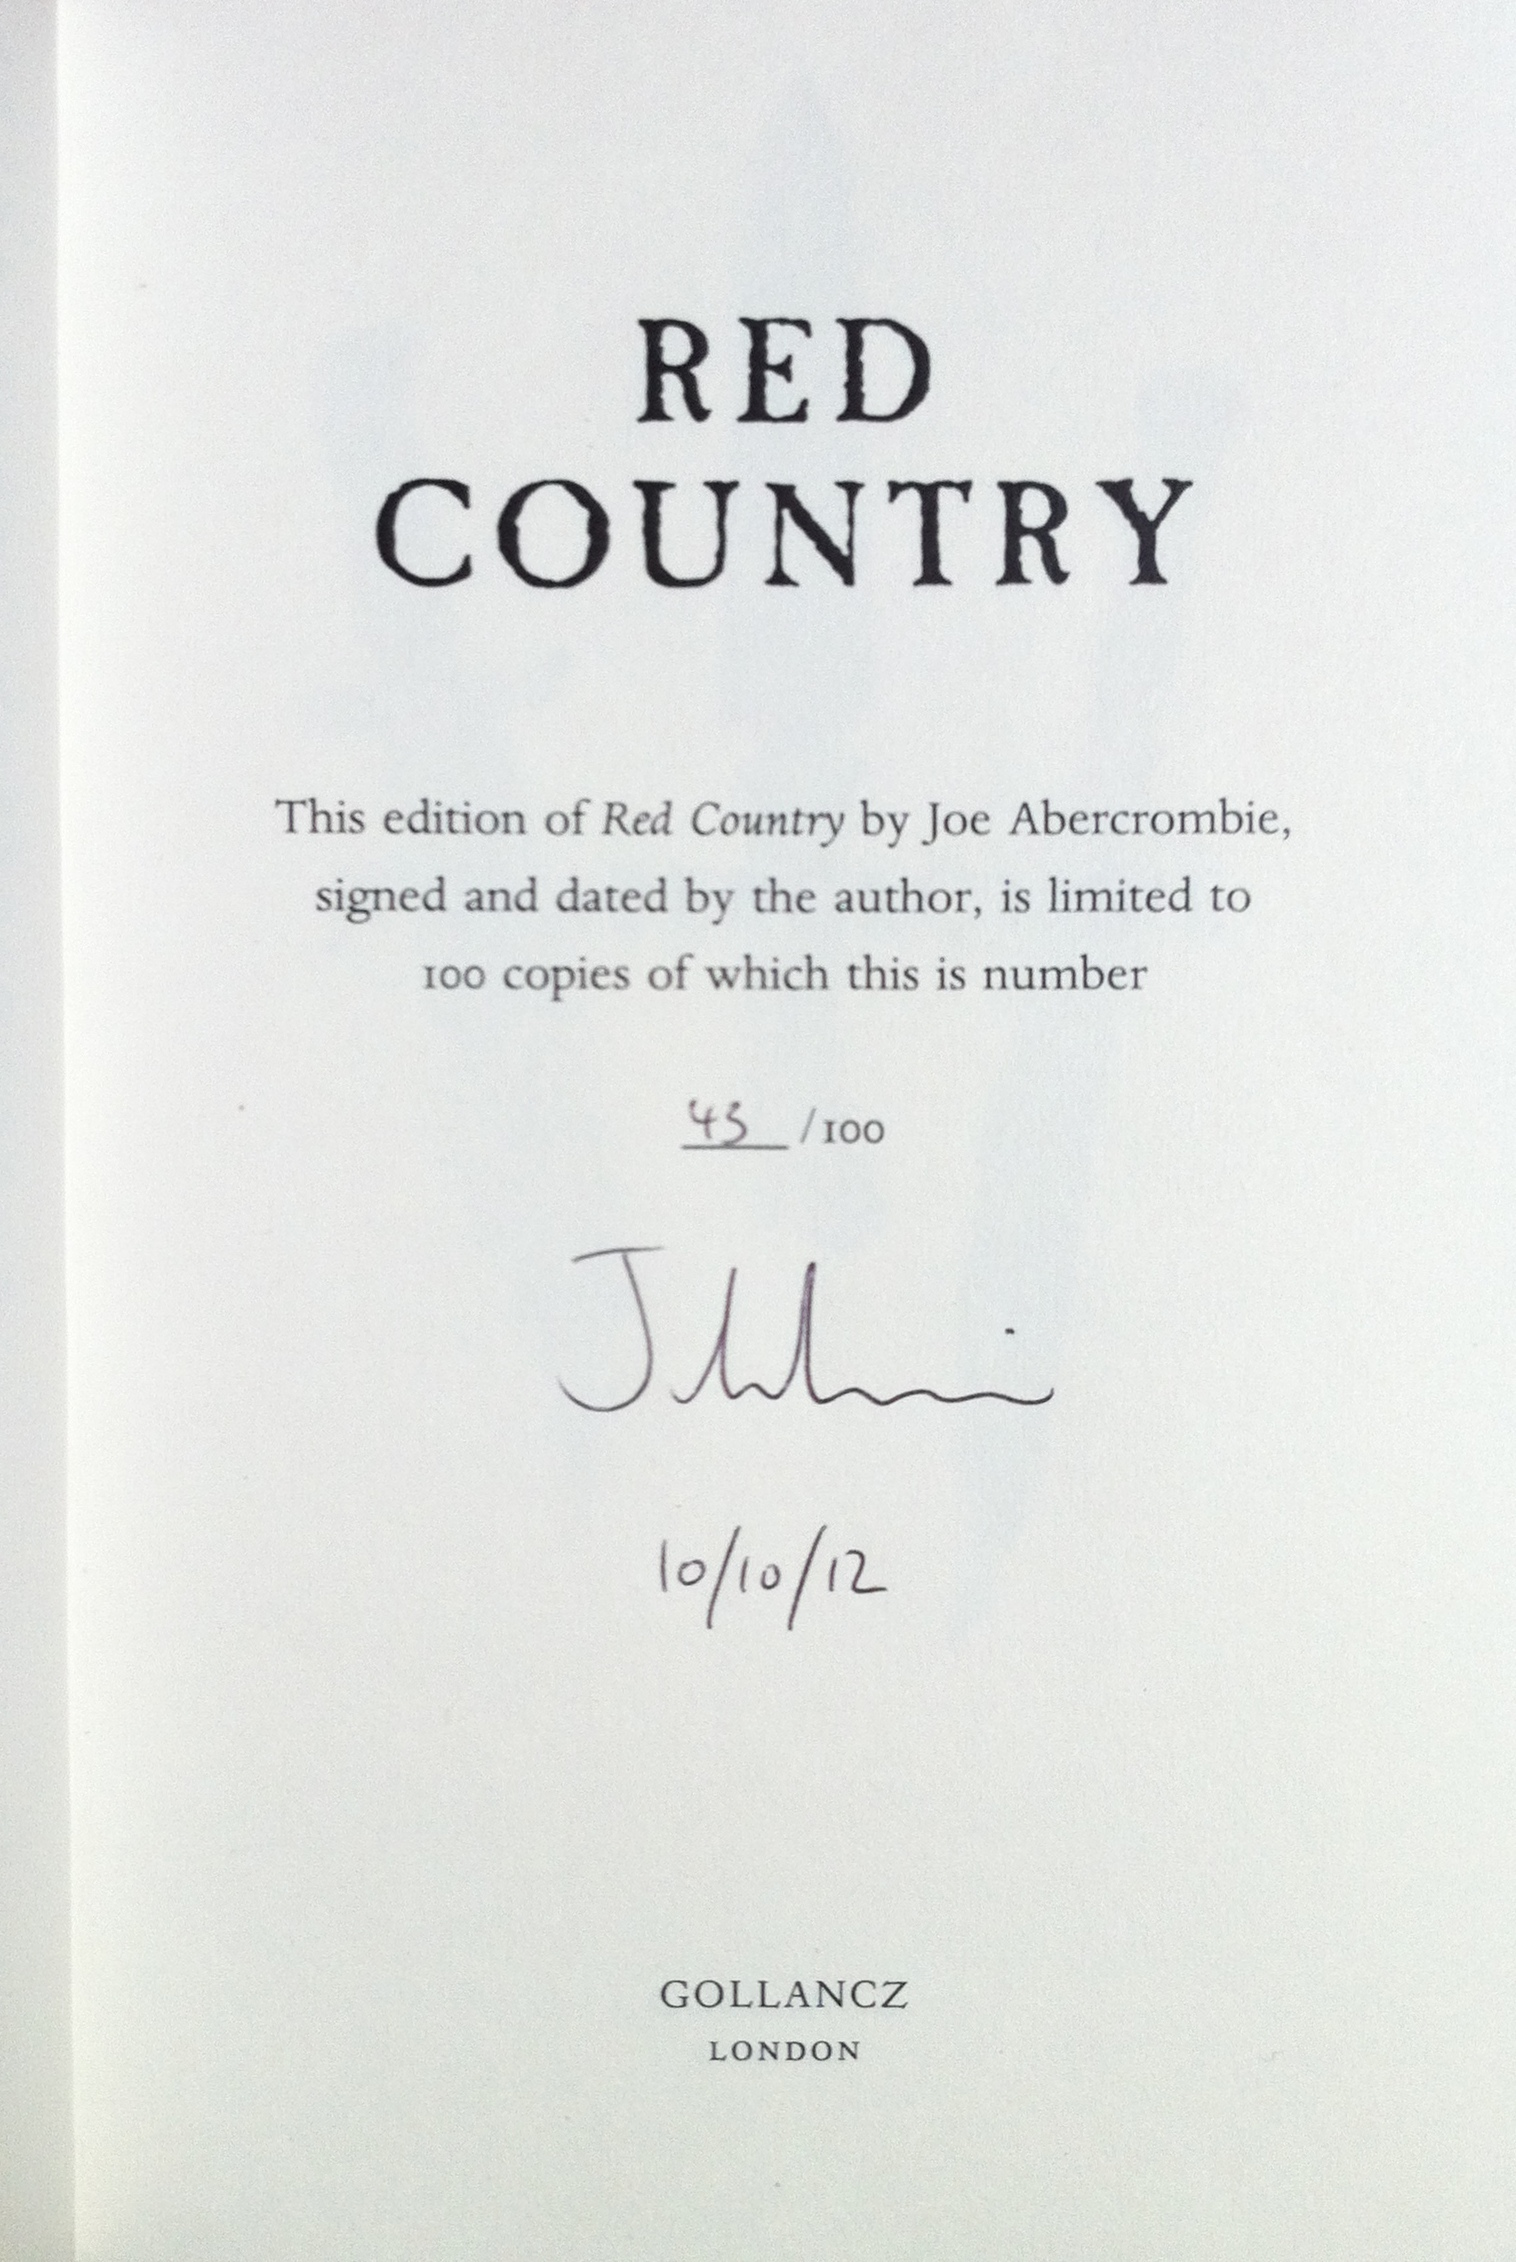 Image for RED COUNTRY Signed, Pre-publication Dated & Numbered First Edition